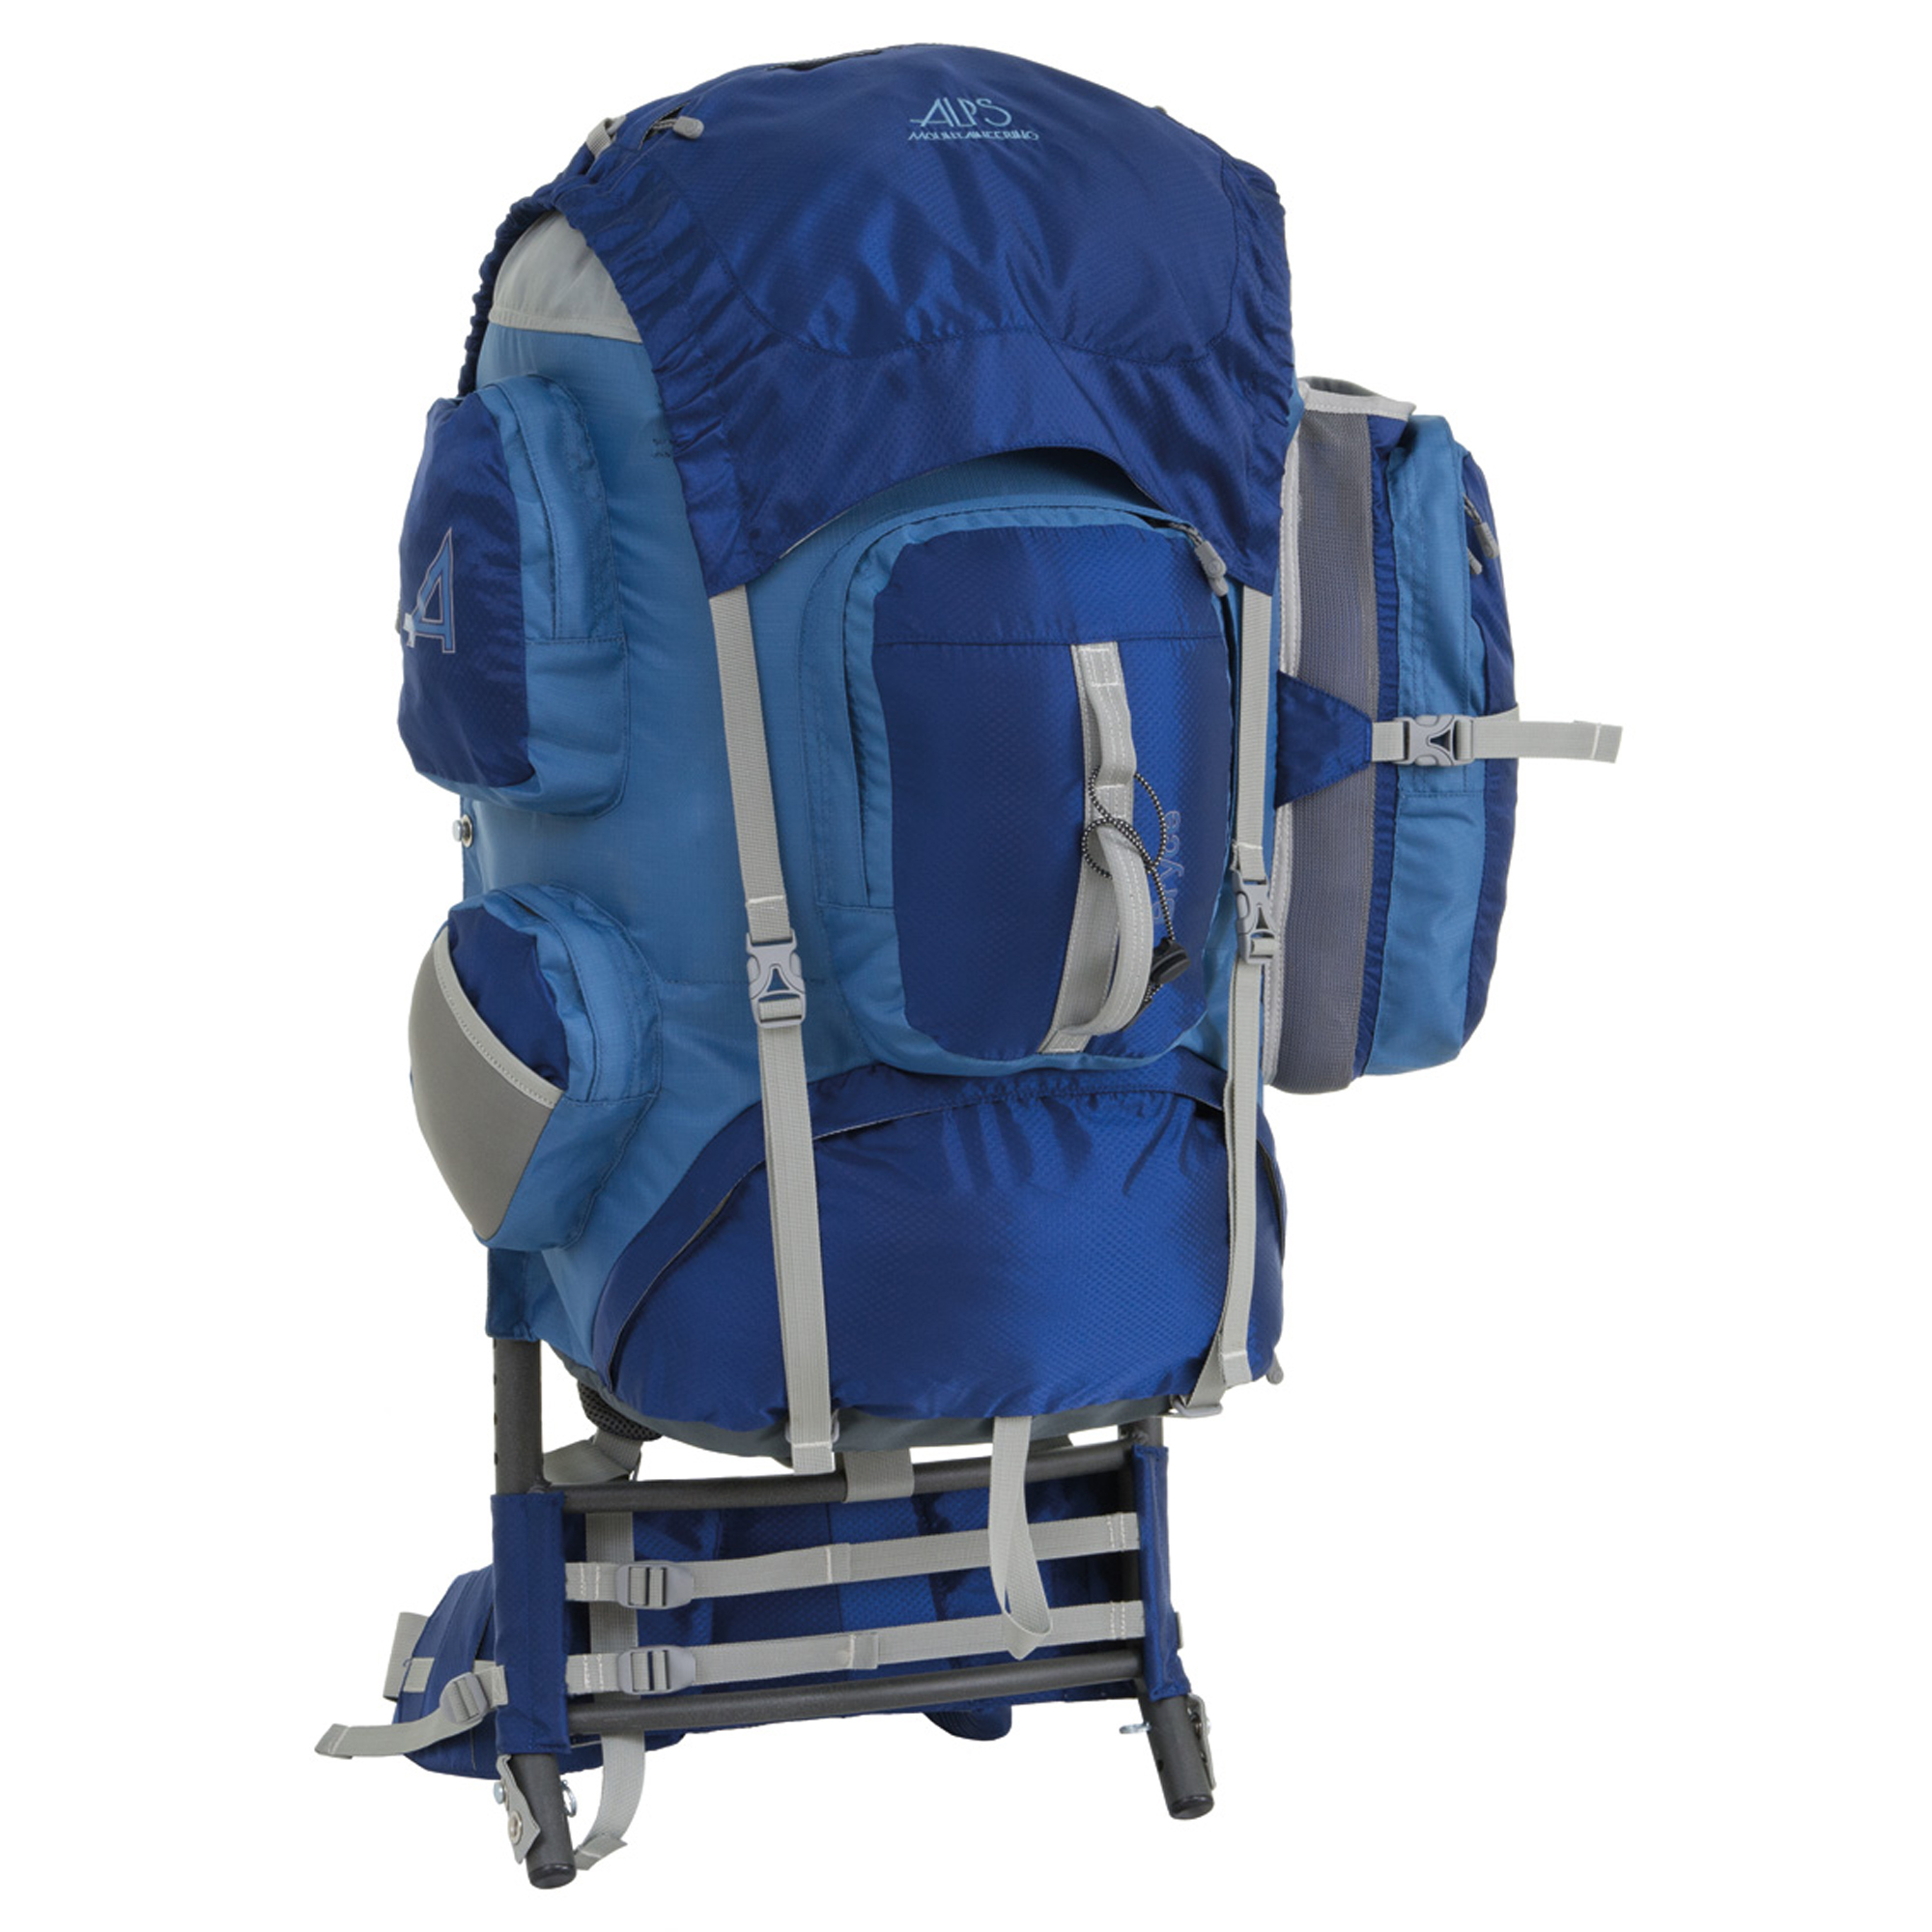 c20cf8a31d0c Alps Mountaineering Bryce External Frame Pack